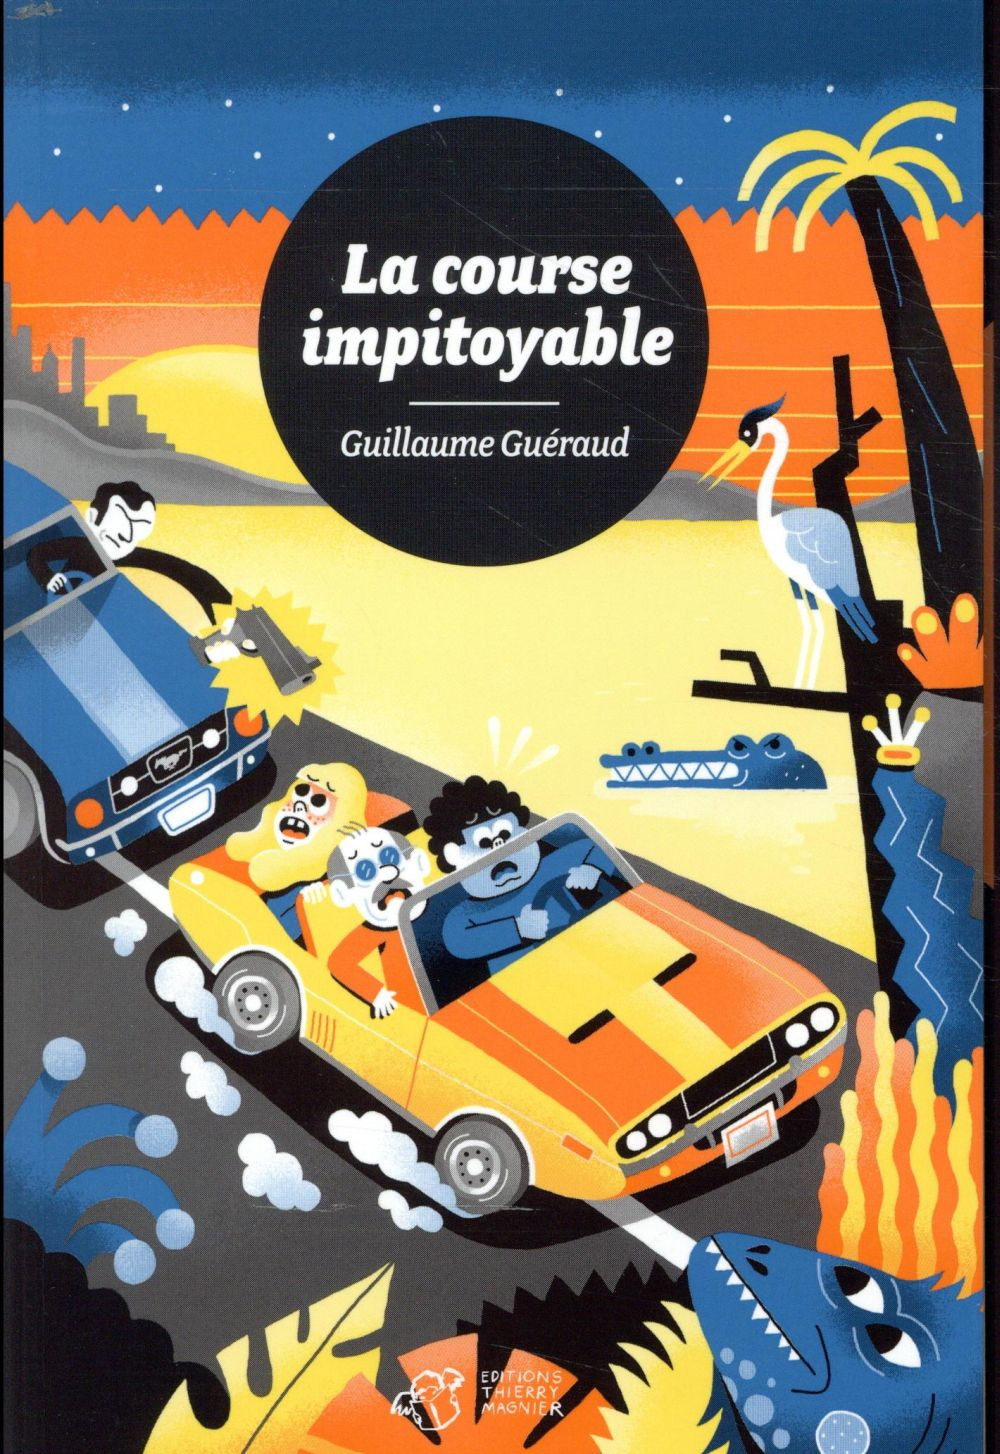 LA COURSE IMPITOYABLE